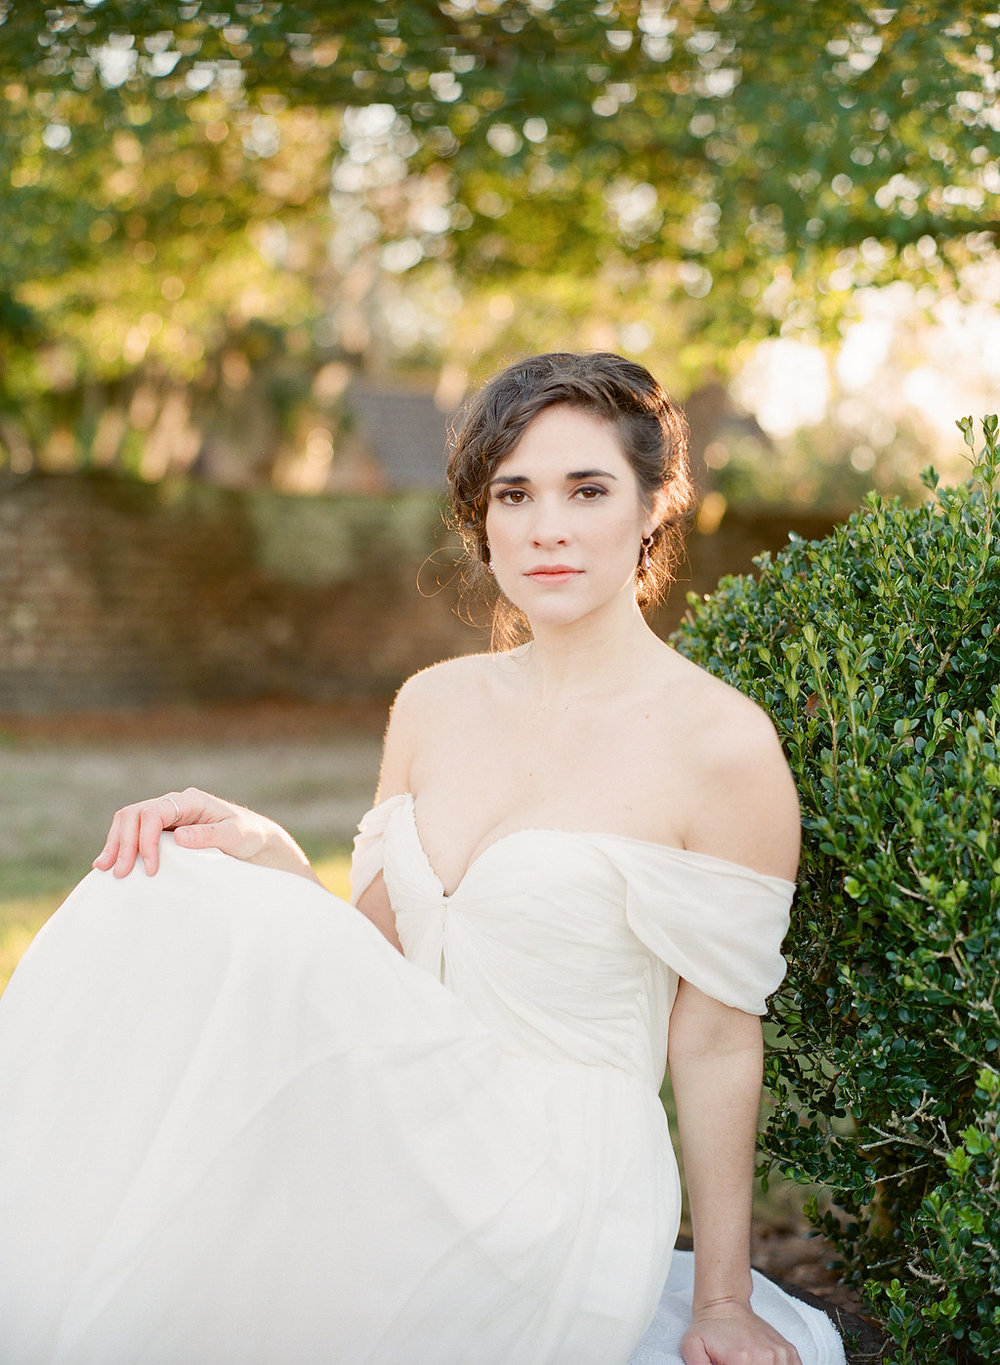 the-happy-bloom-ivory-and-beau-bridal-boutique-trendy-bride-magazine-august-floral-design-savannah-bridal-boutique-lafayette-sarah-seven-boone-hall-plantation-wedding-southern-wedding-charleston-wedding-mt-pleasent-wedding-15.jpg